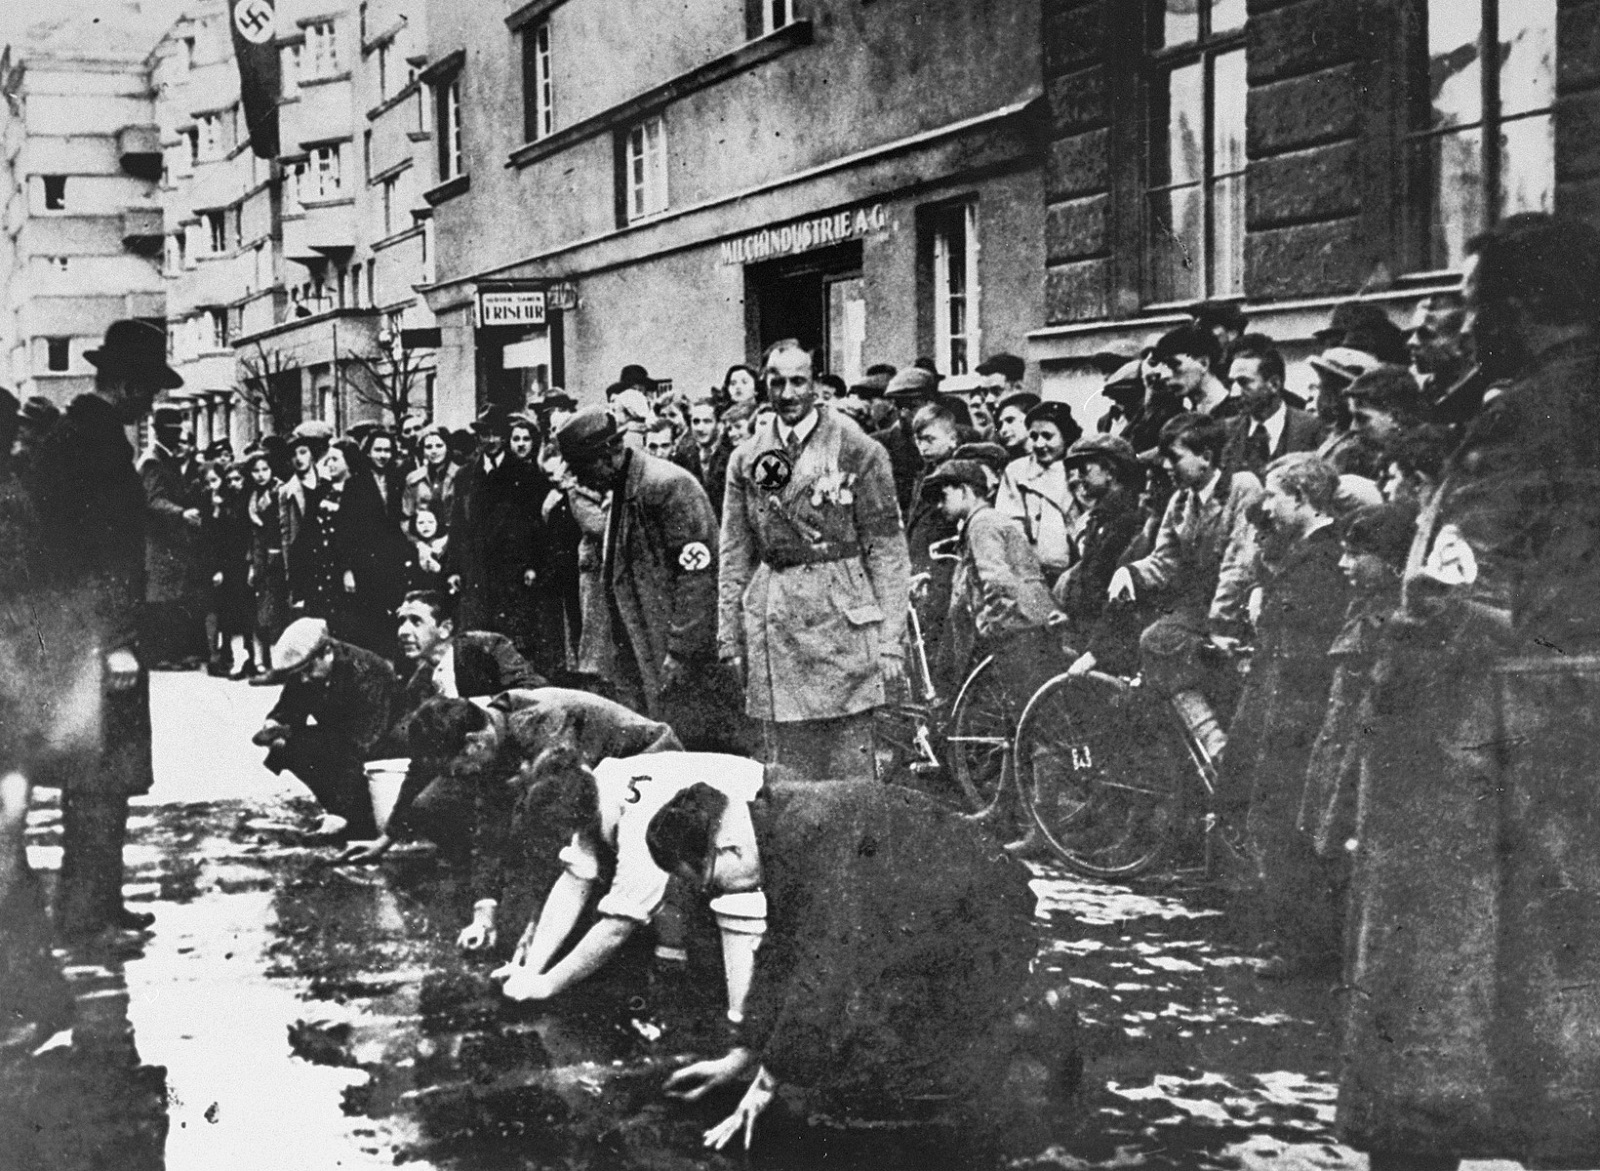 In this image, as part of a ritual of public humiliation, Jewish men and women were forced to scrub the streets to remove political slogans that were critical of Germany's annexation of Austria.